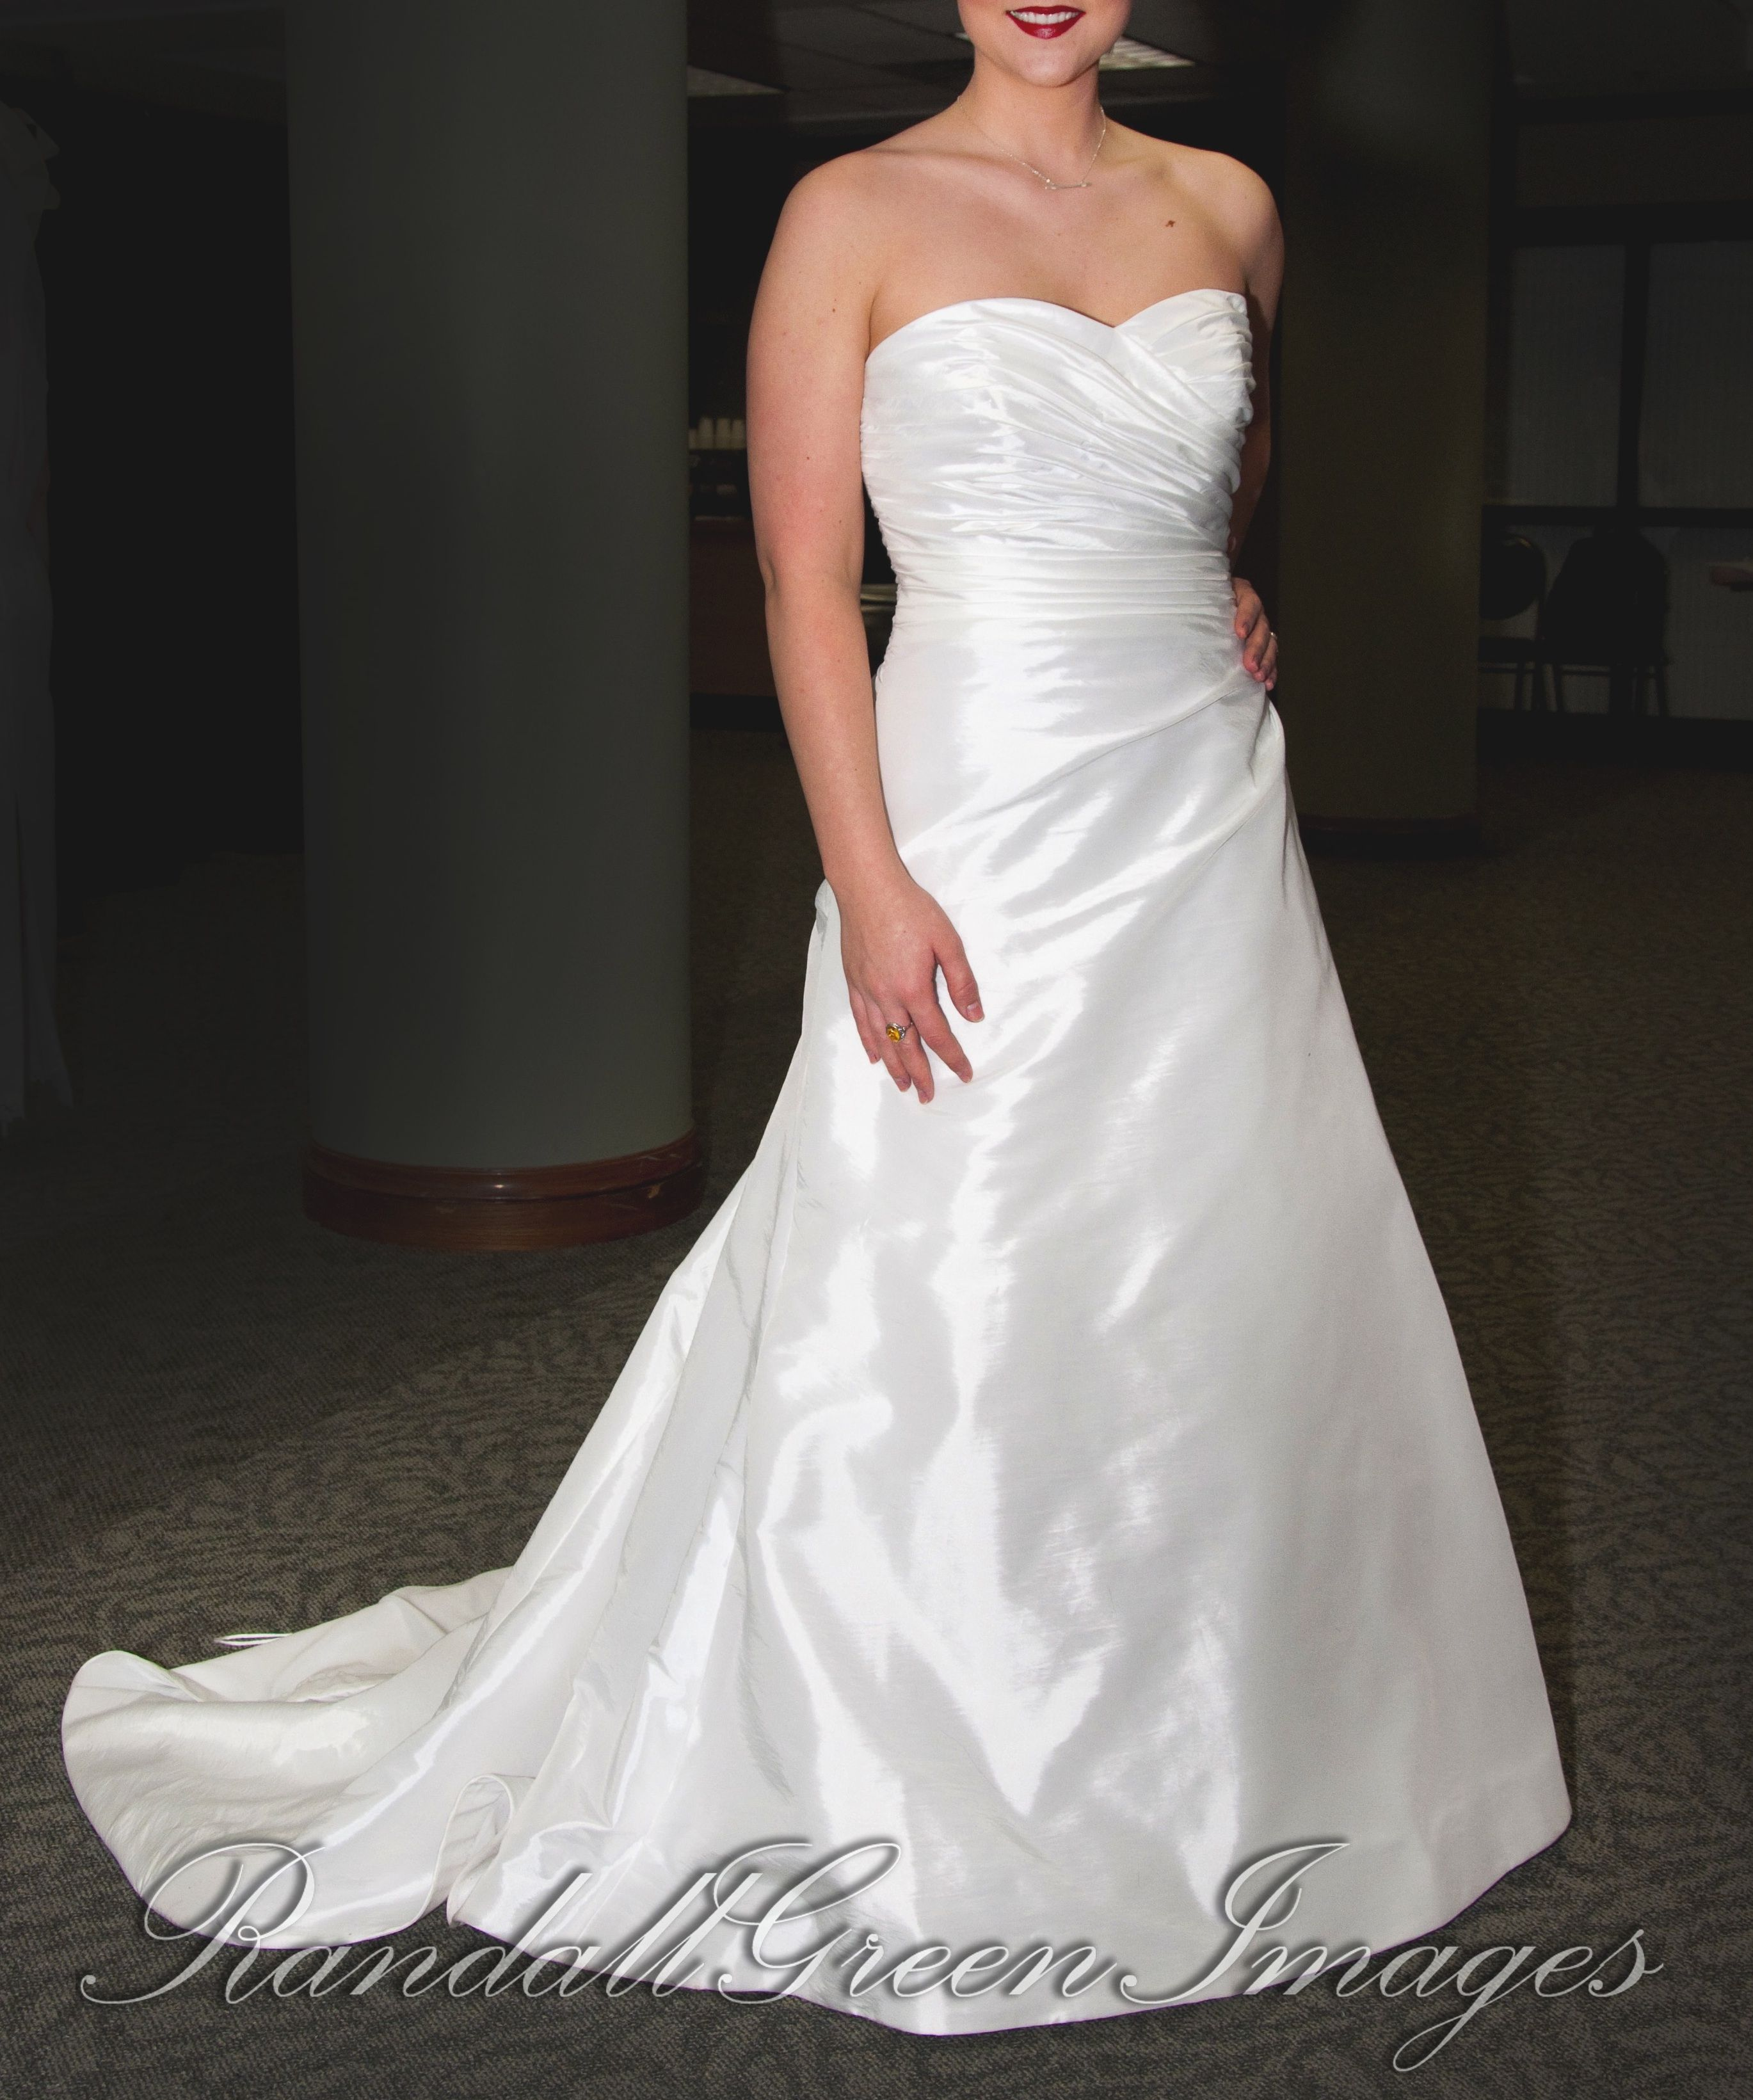 Yes You Can Wash And Dry Your Wedding Dress At Home Wedding Dresses Diy Wedding Dress Dresses